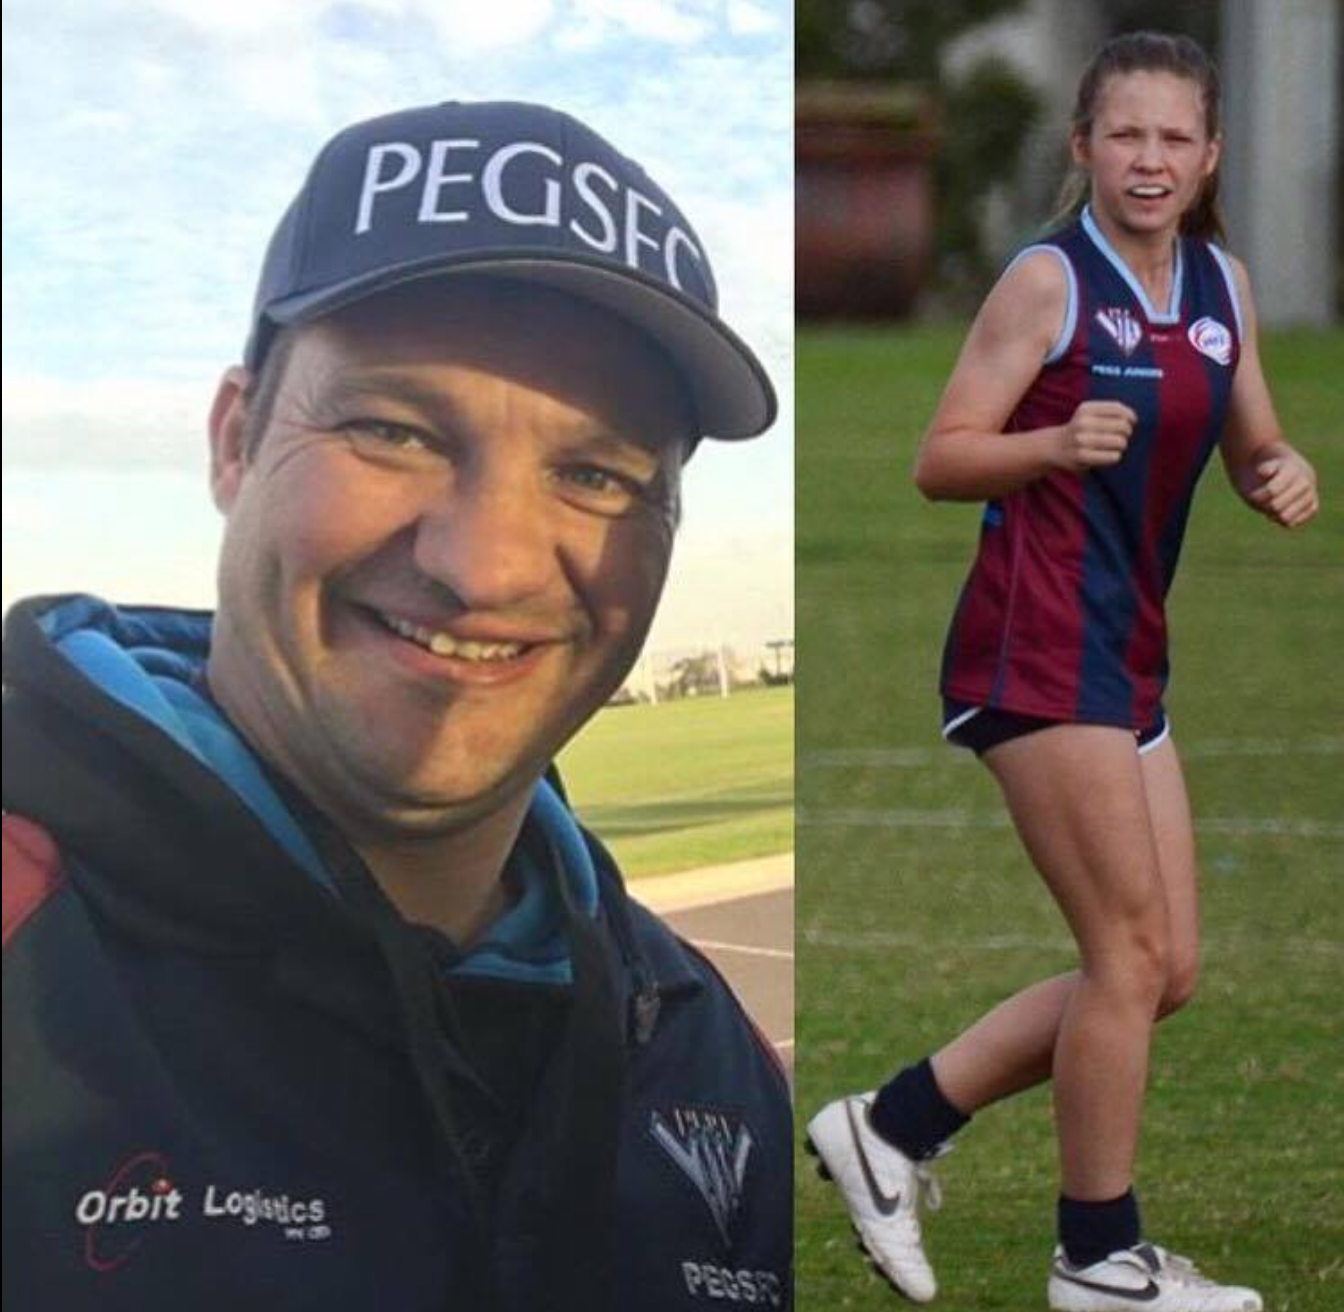 Michael and daughter, Lily enjoy the football life as coach and player.